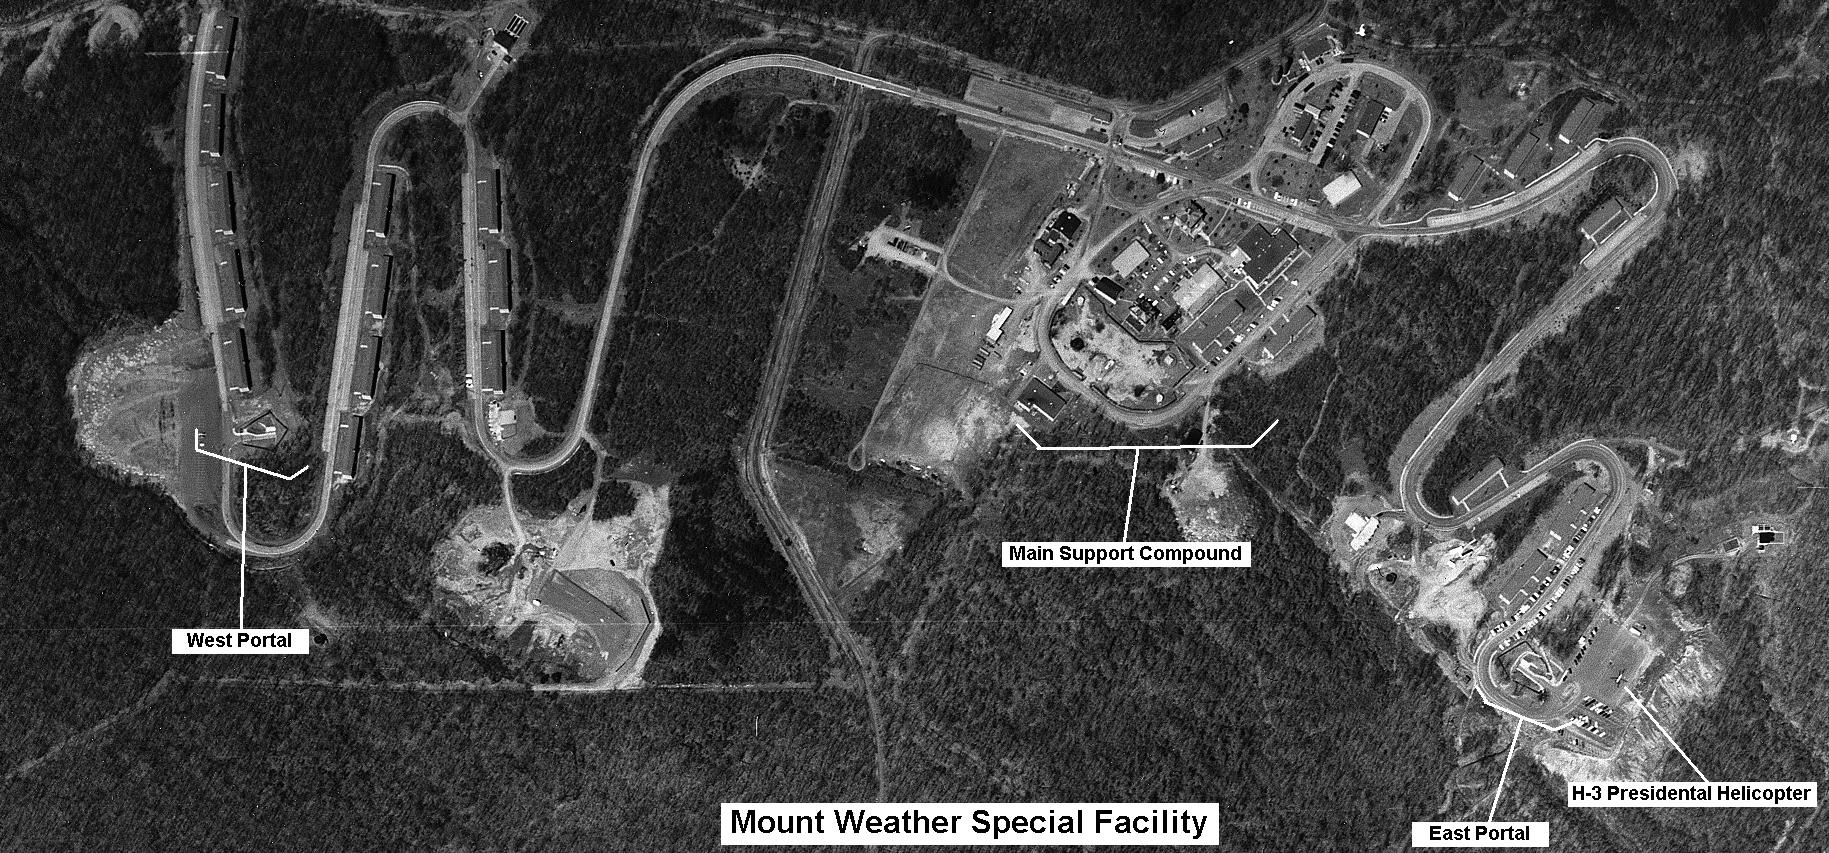 History: The Most Secret Military Bases In The World - Page 17 of 20